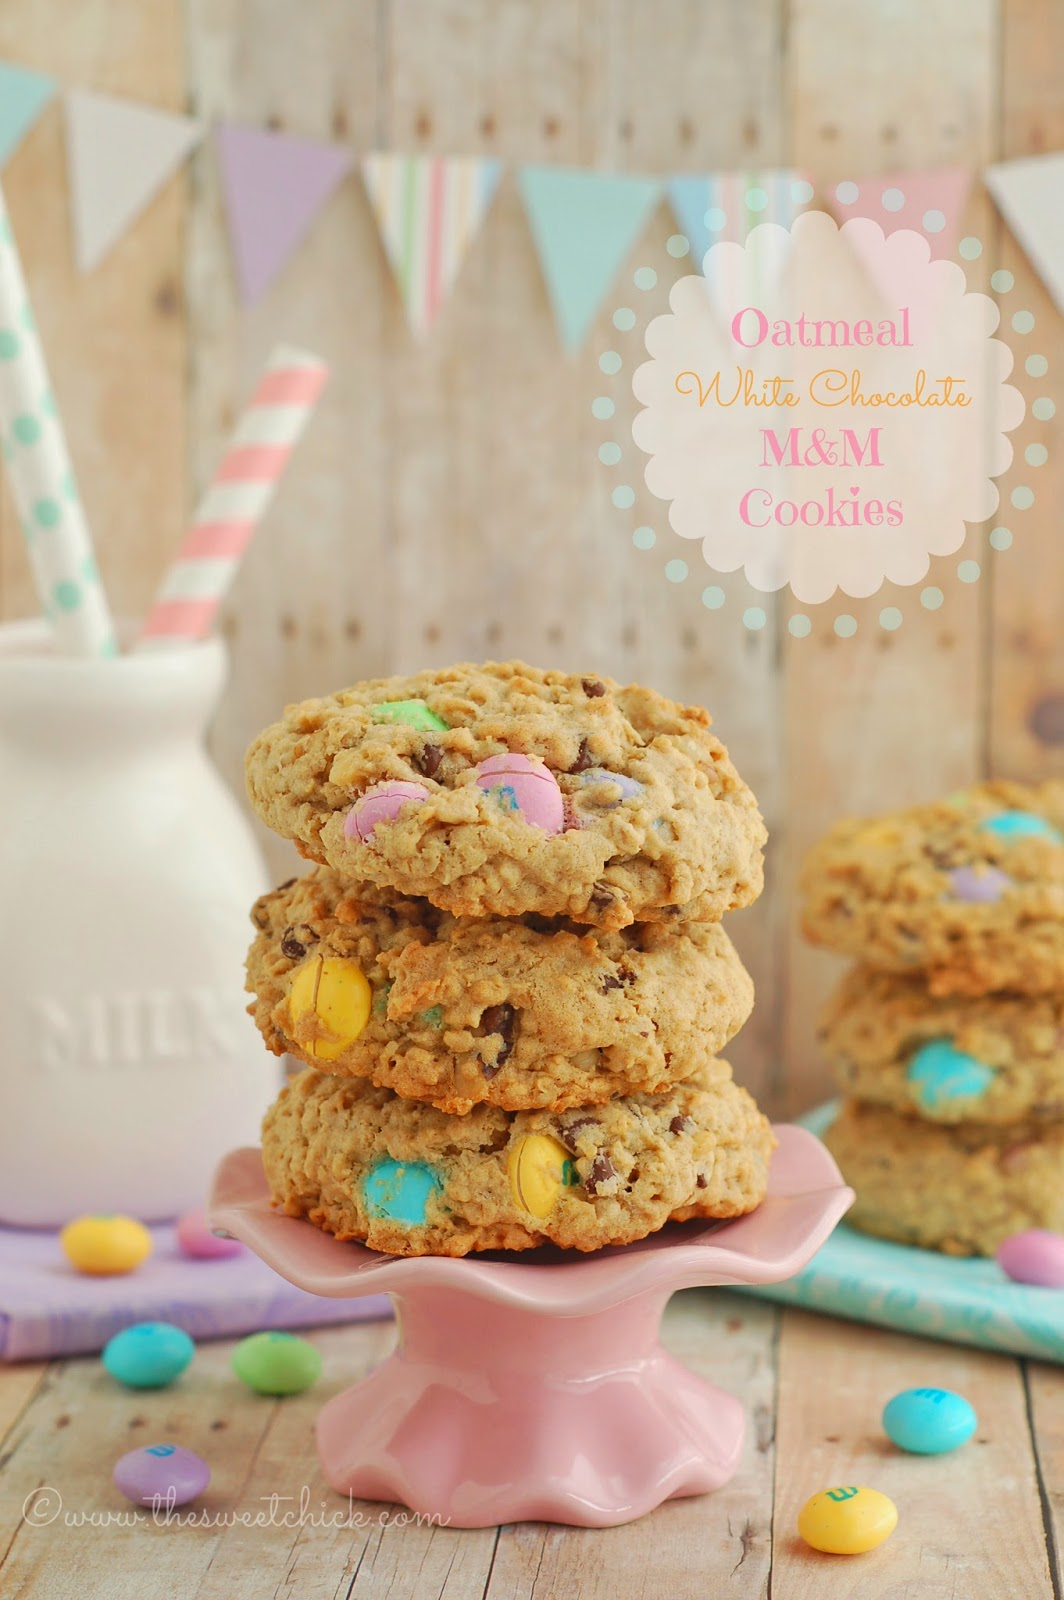 Oatmeal White Chocolate M&M Cookies by The Sweet Chick